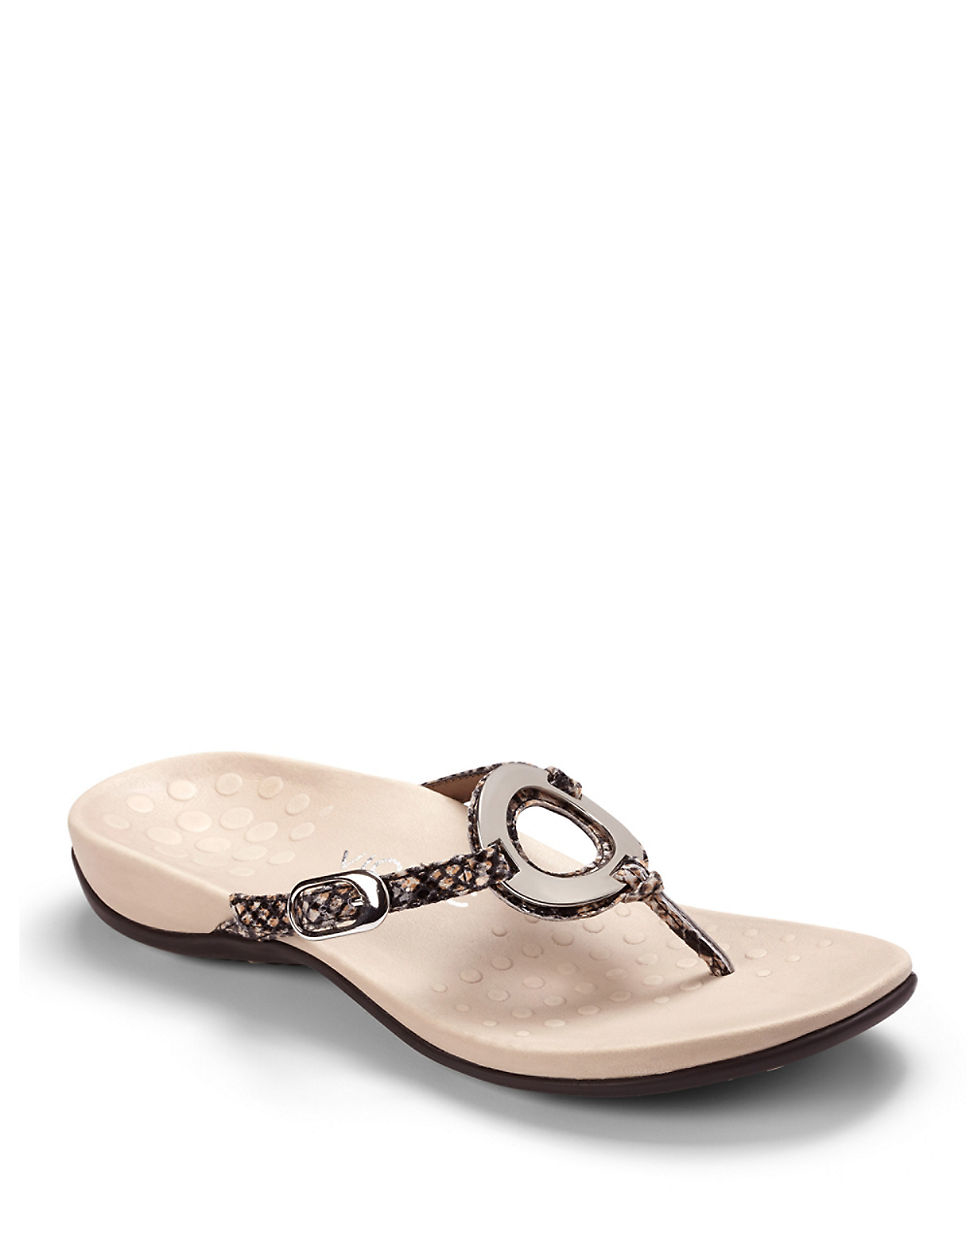 Nordstrom Vionic House Shoes For Women